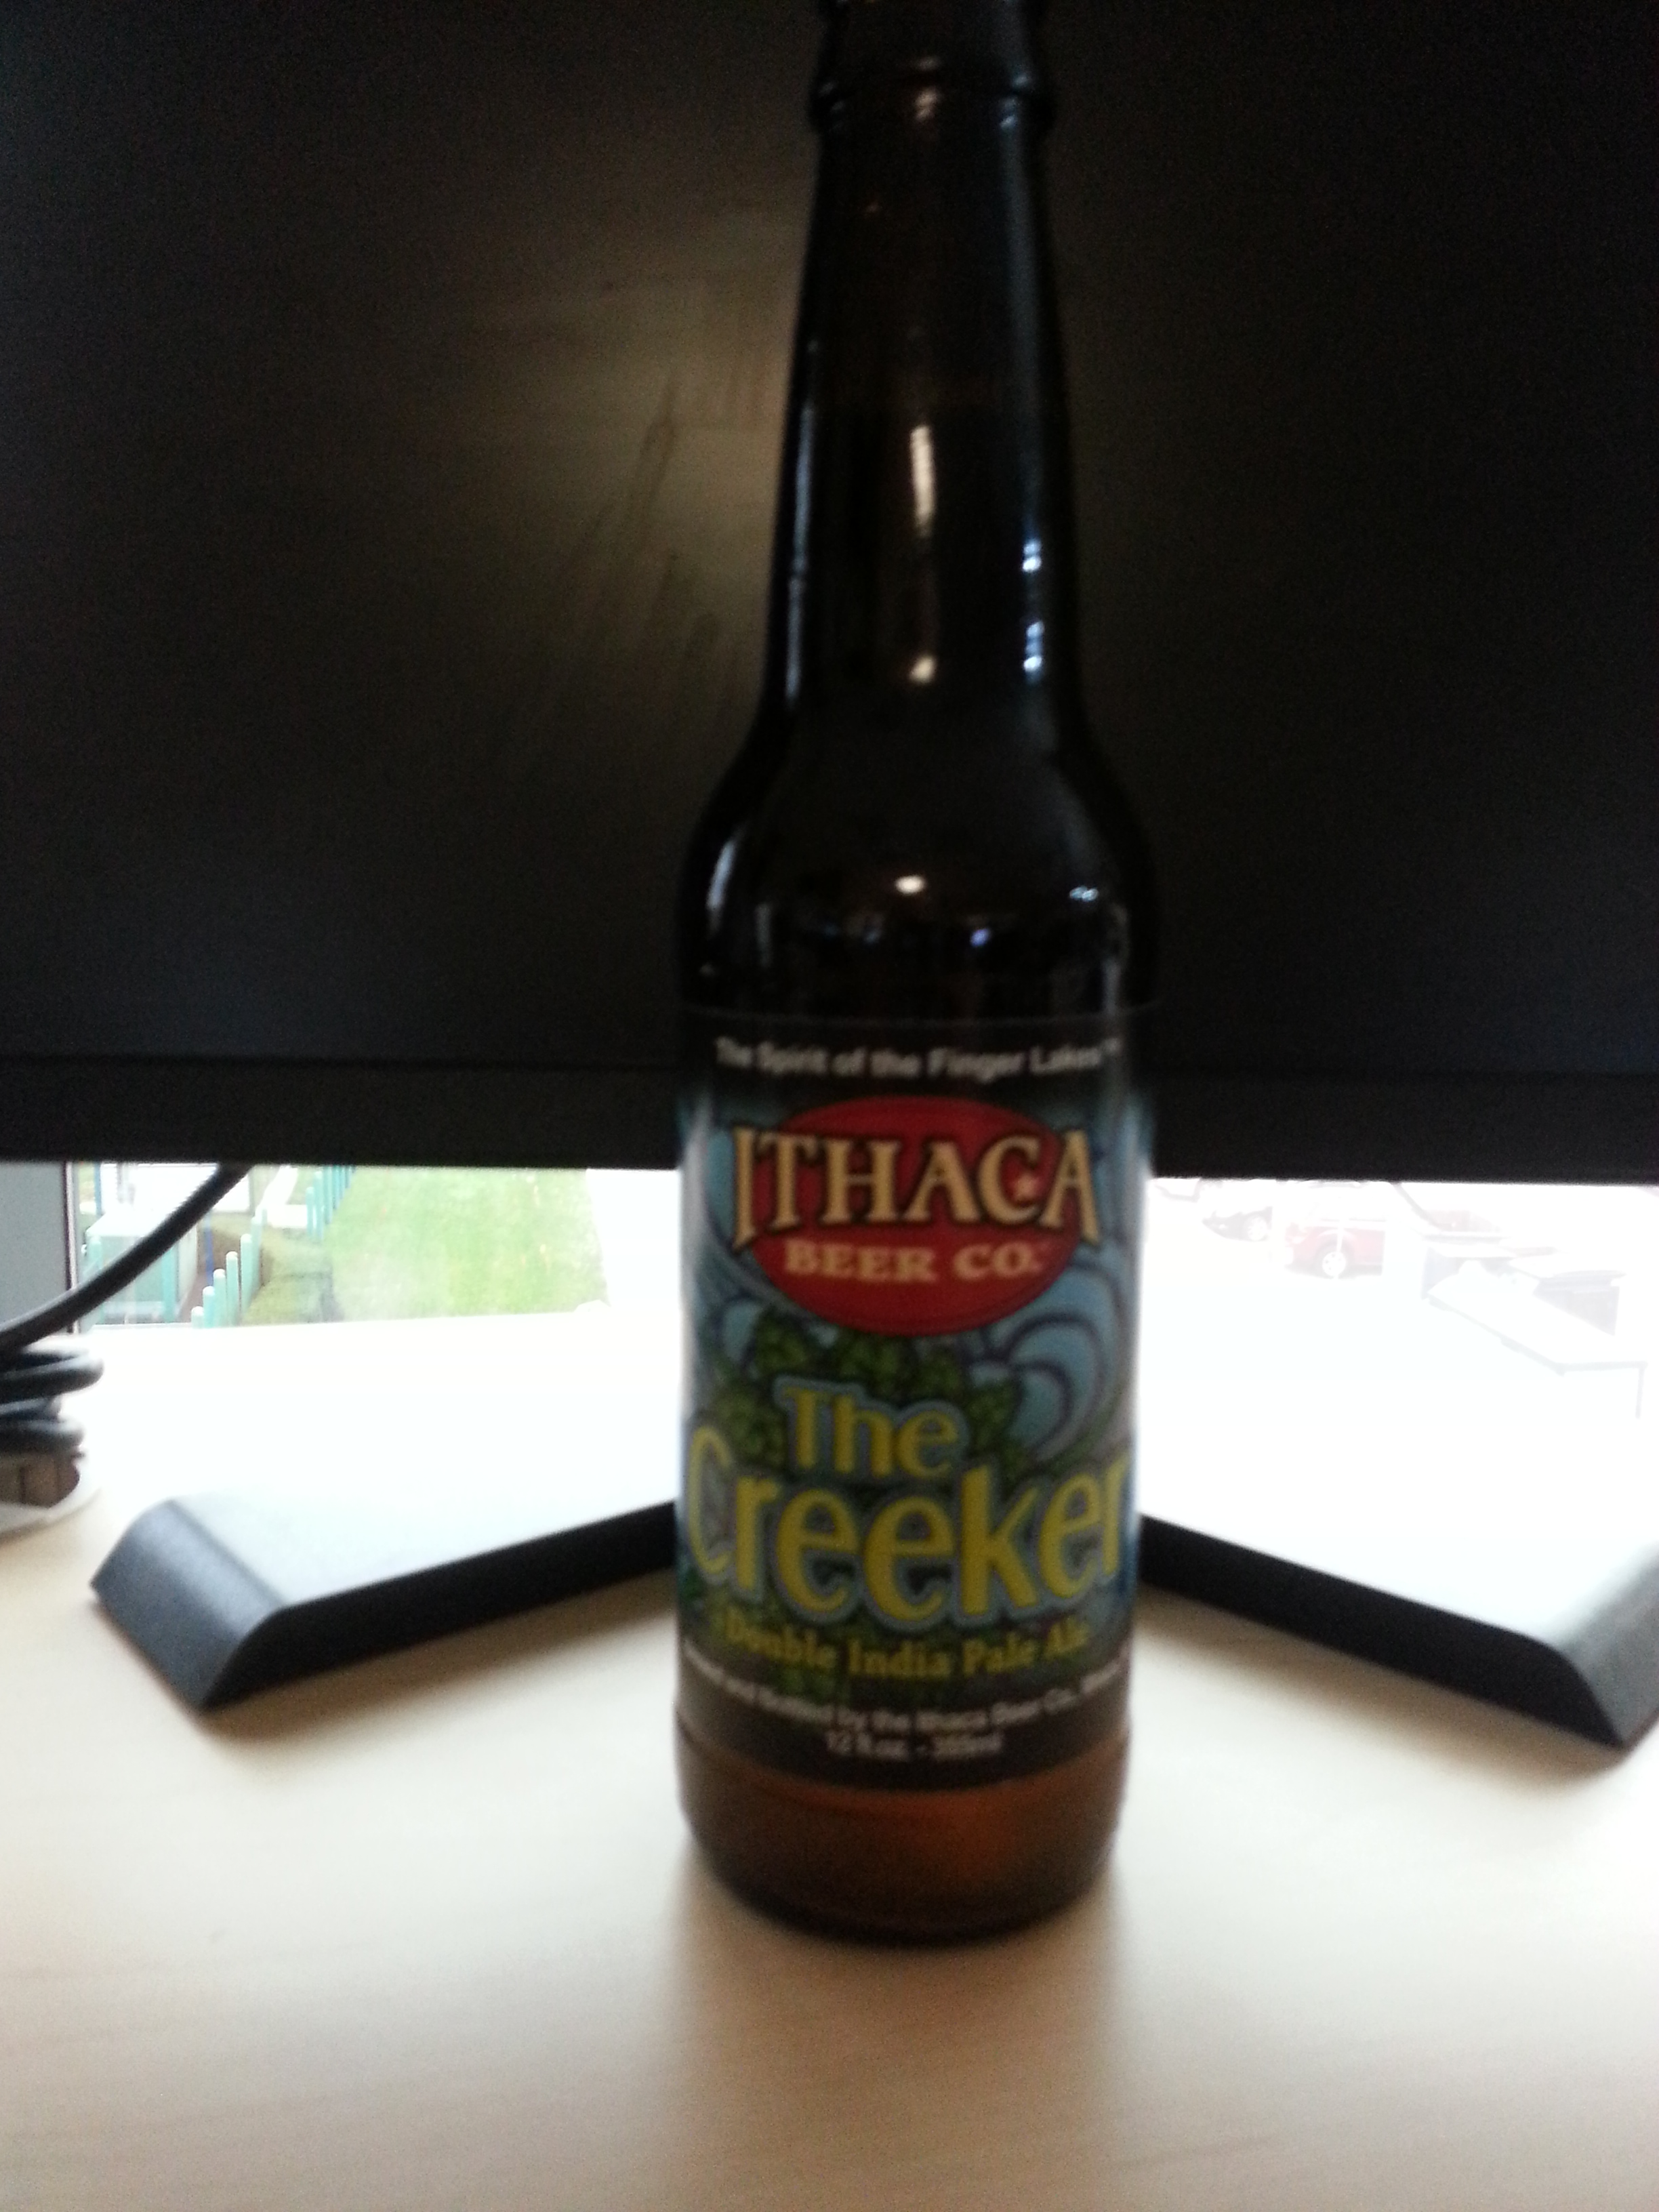 Ithaca The Creeker Double IPA